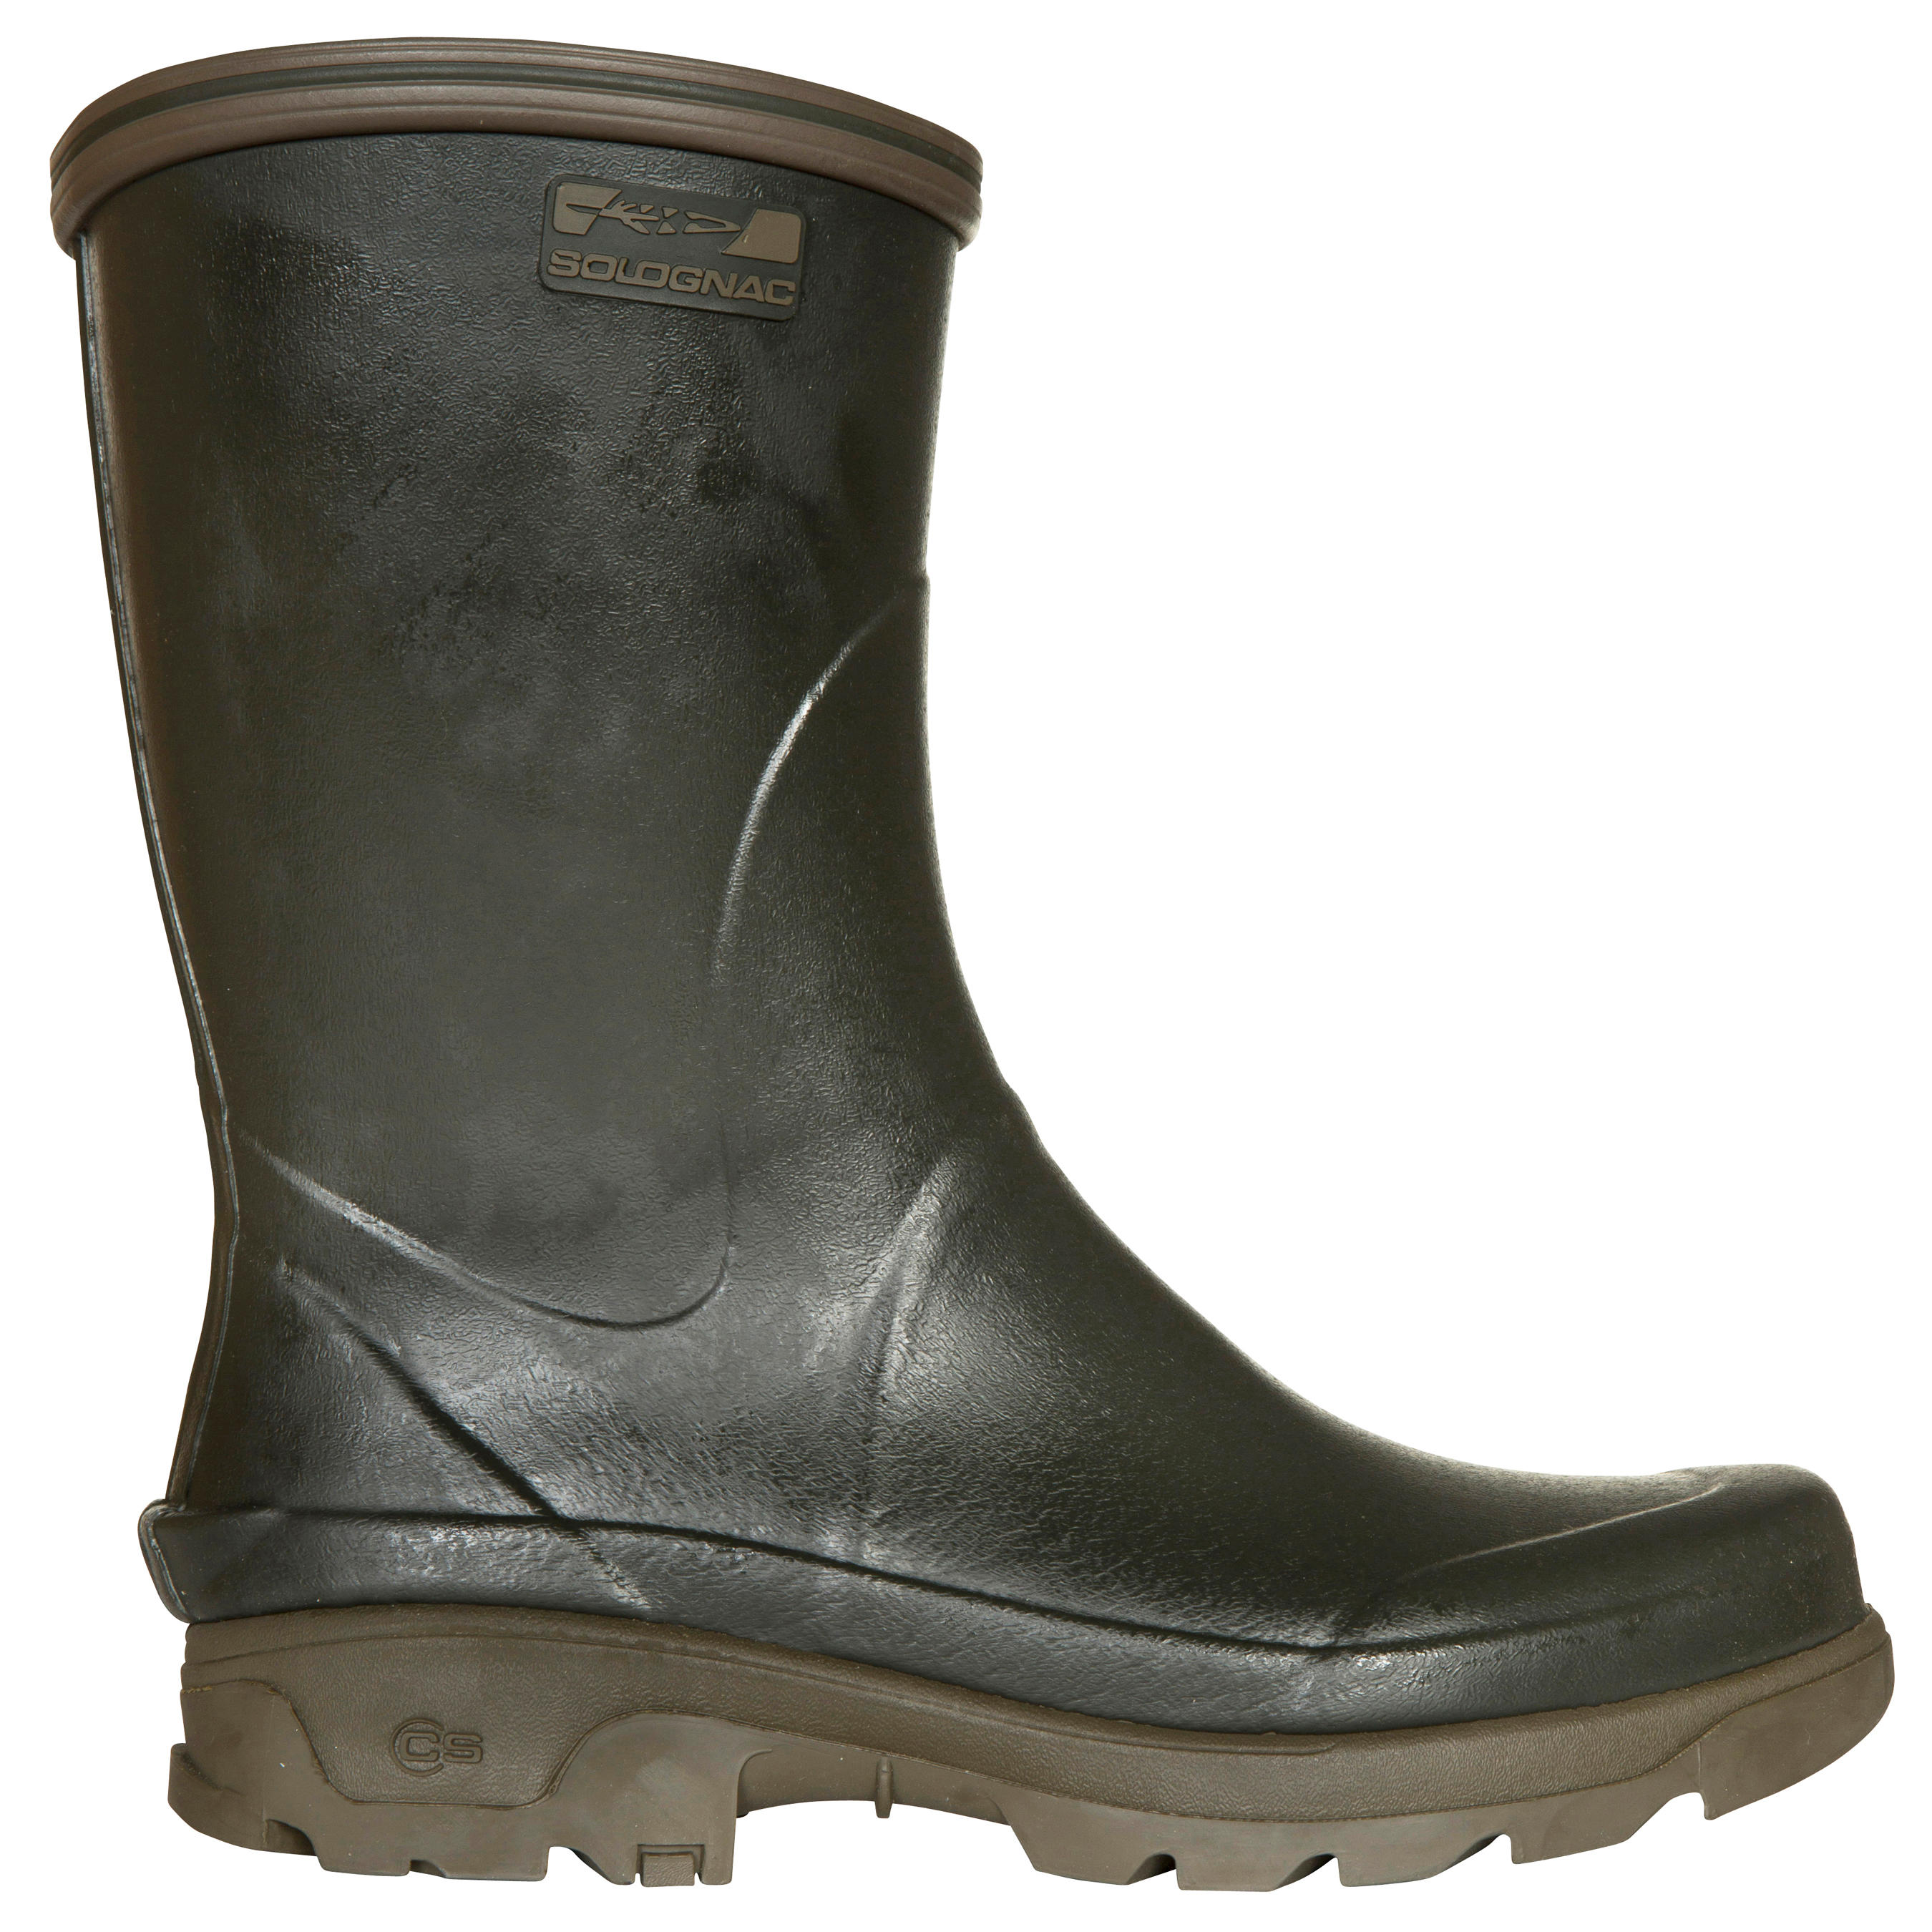 Inverness 300 durable low hunting wellies - green